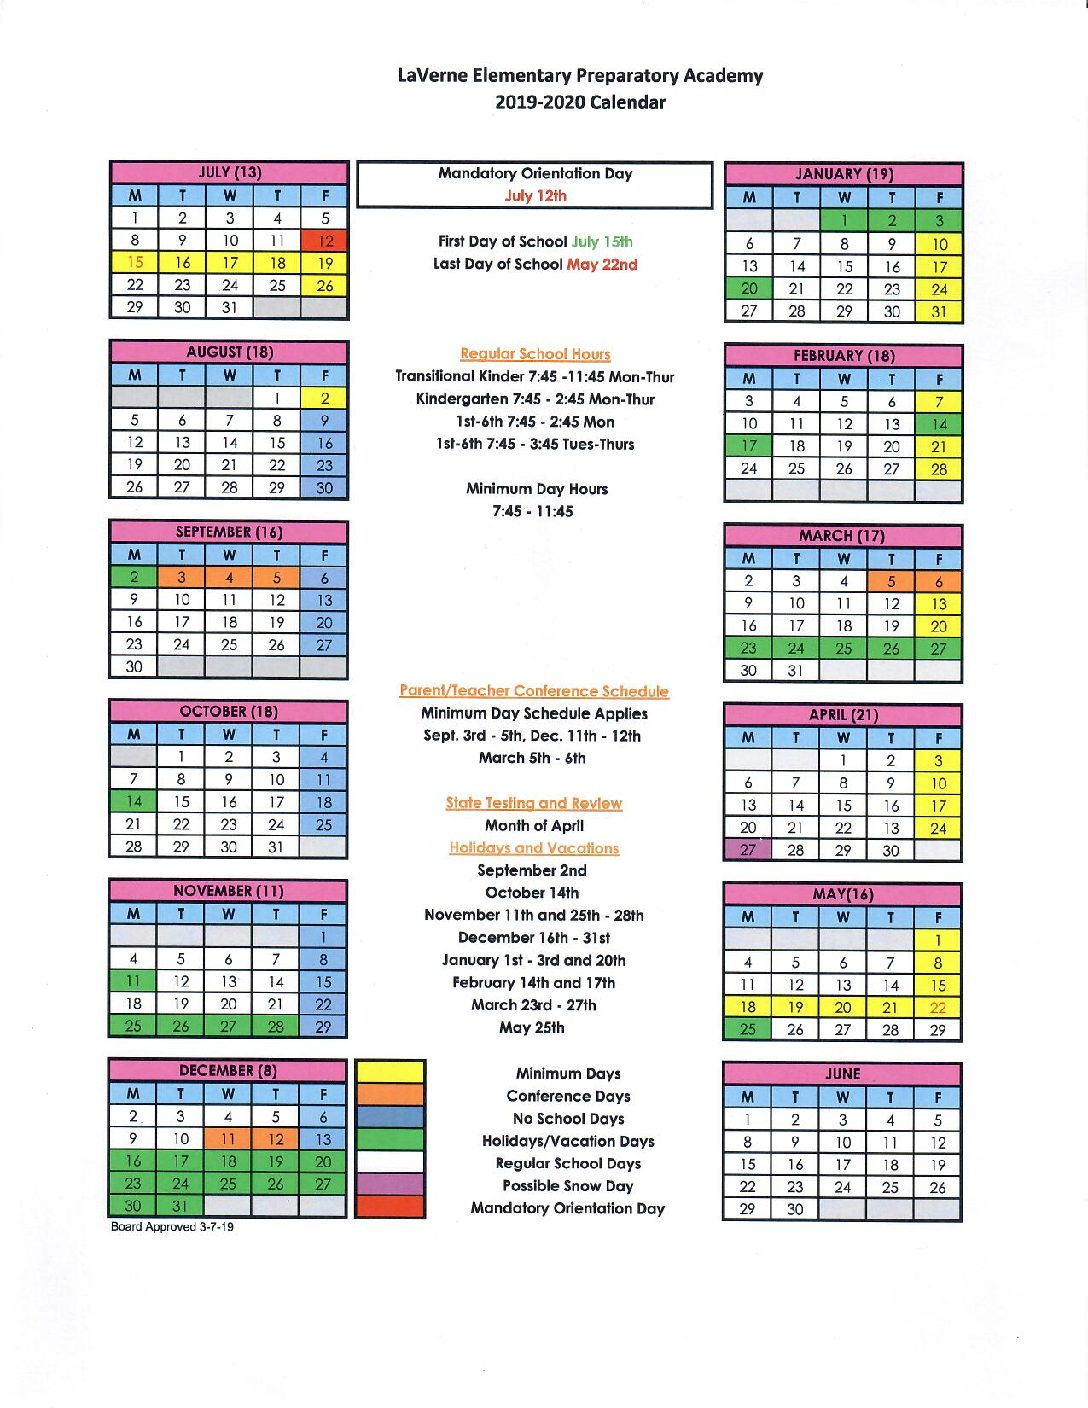 School Calendar 2019-2020 – Lepacademy intended for University Of Redlands Academic Calendar 2020